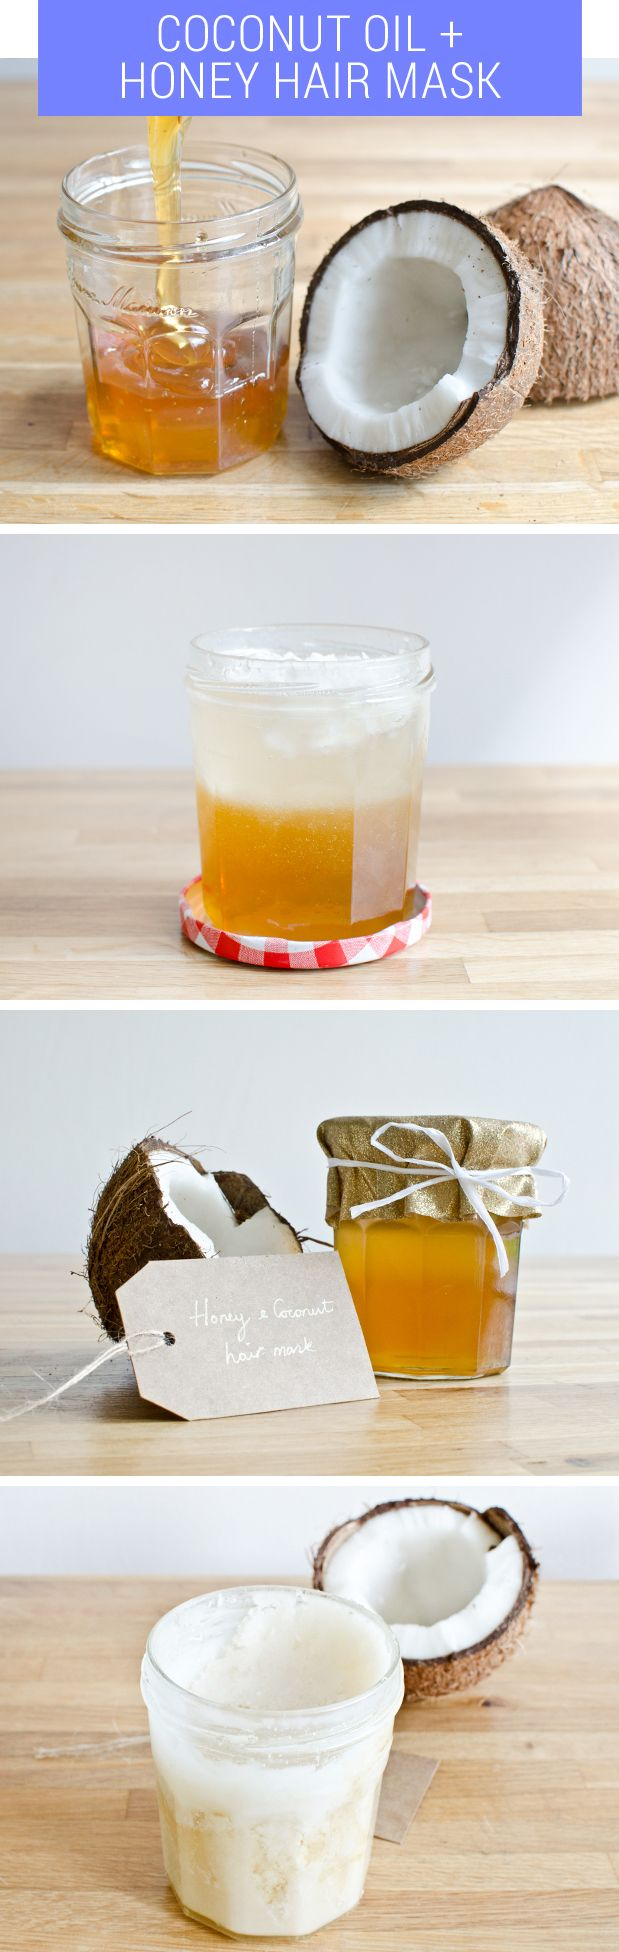 DIY Coconut and Honey Hair Mask   For more ideas, click the picture or visit www.thedebrief.co.uk